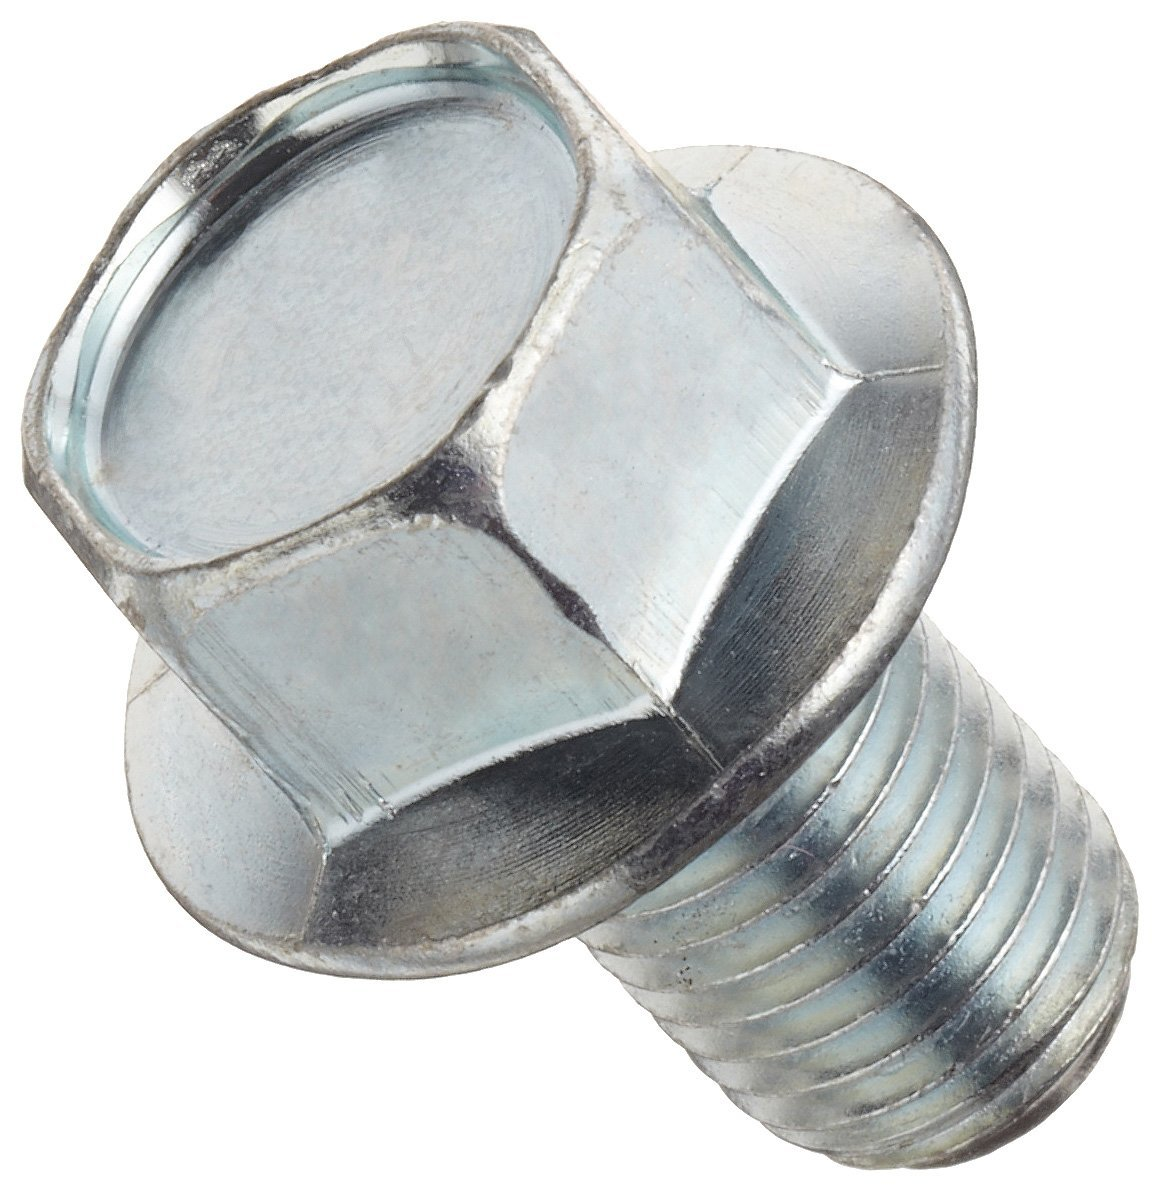 Class 10.9 Steel Cap Screw, Zinc Plated Finish, Flange Hex Head, External Hex Drive, Meets JIS B1190, Flanged, Non-Serrated, 12mm Length, Partially Threaded, M8-1.25 Metric Coarse Threads, Imported (Pack of 50)